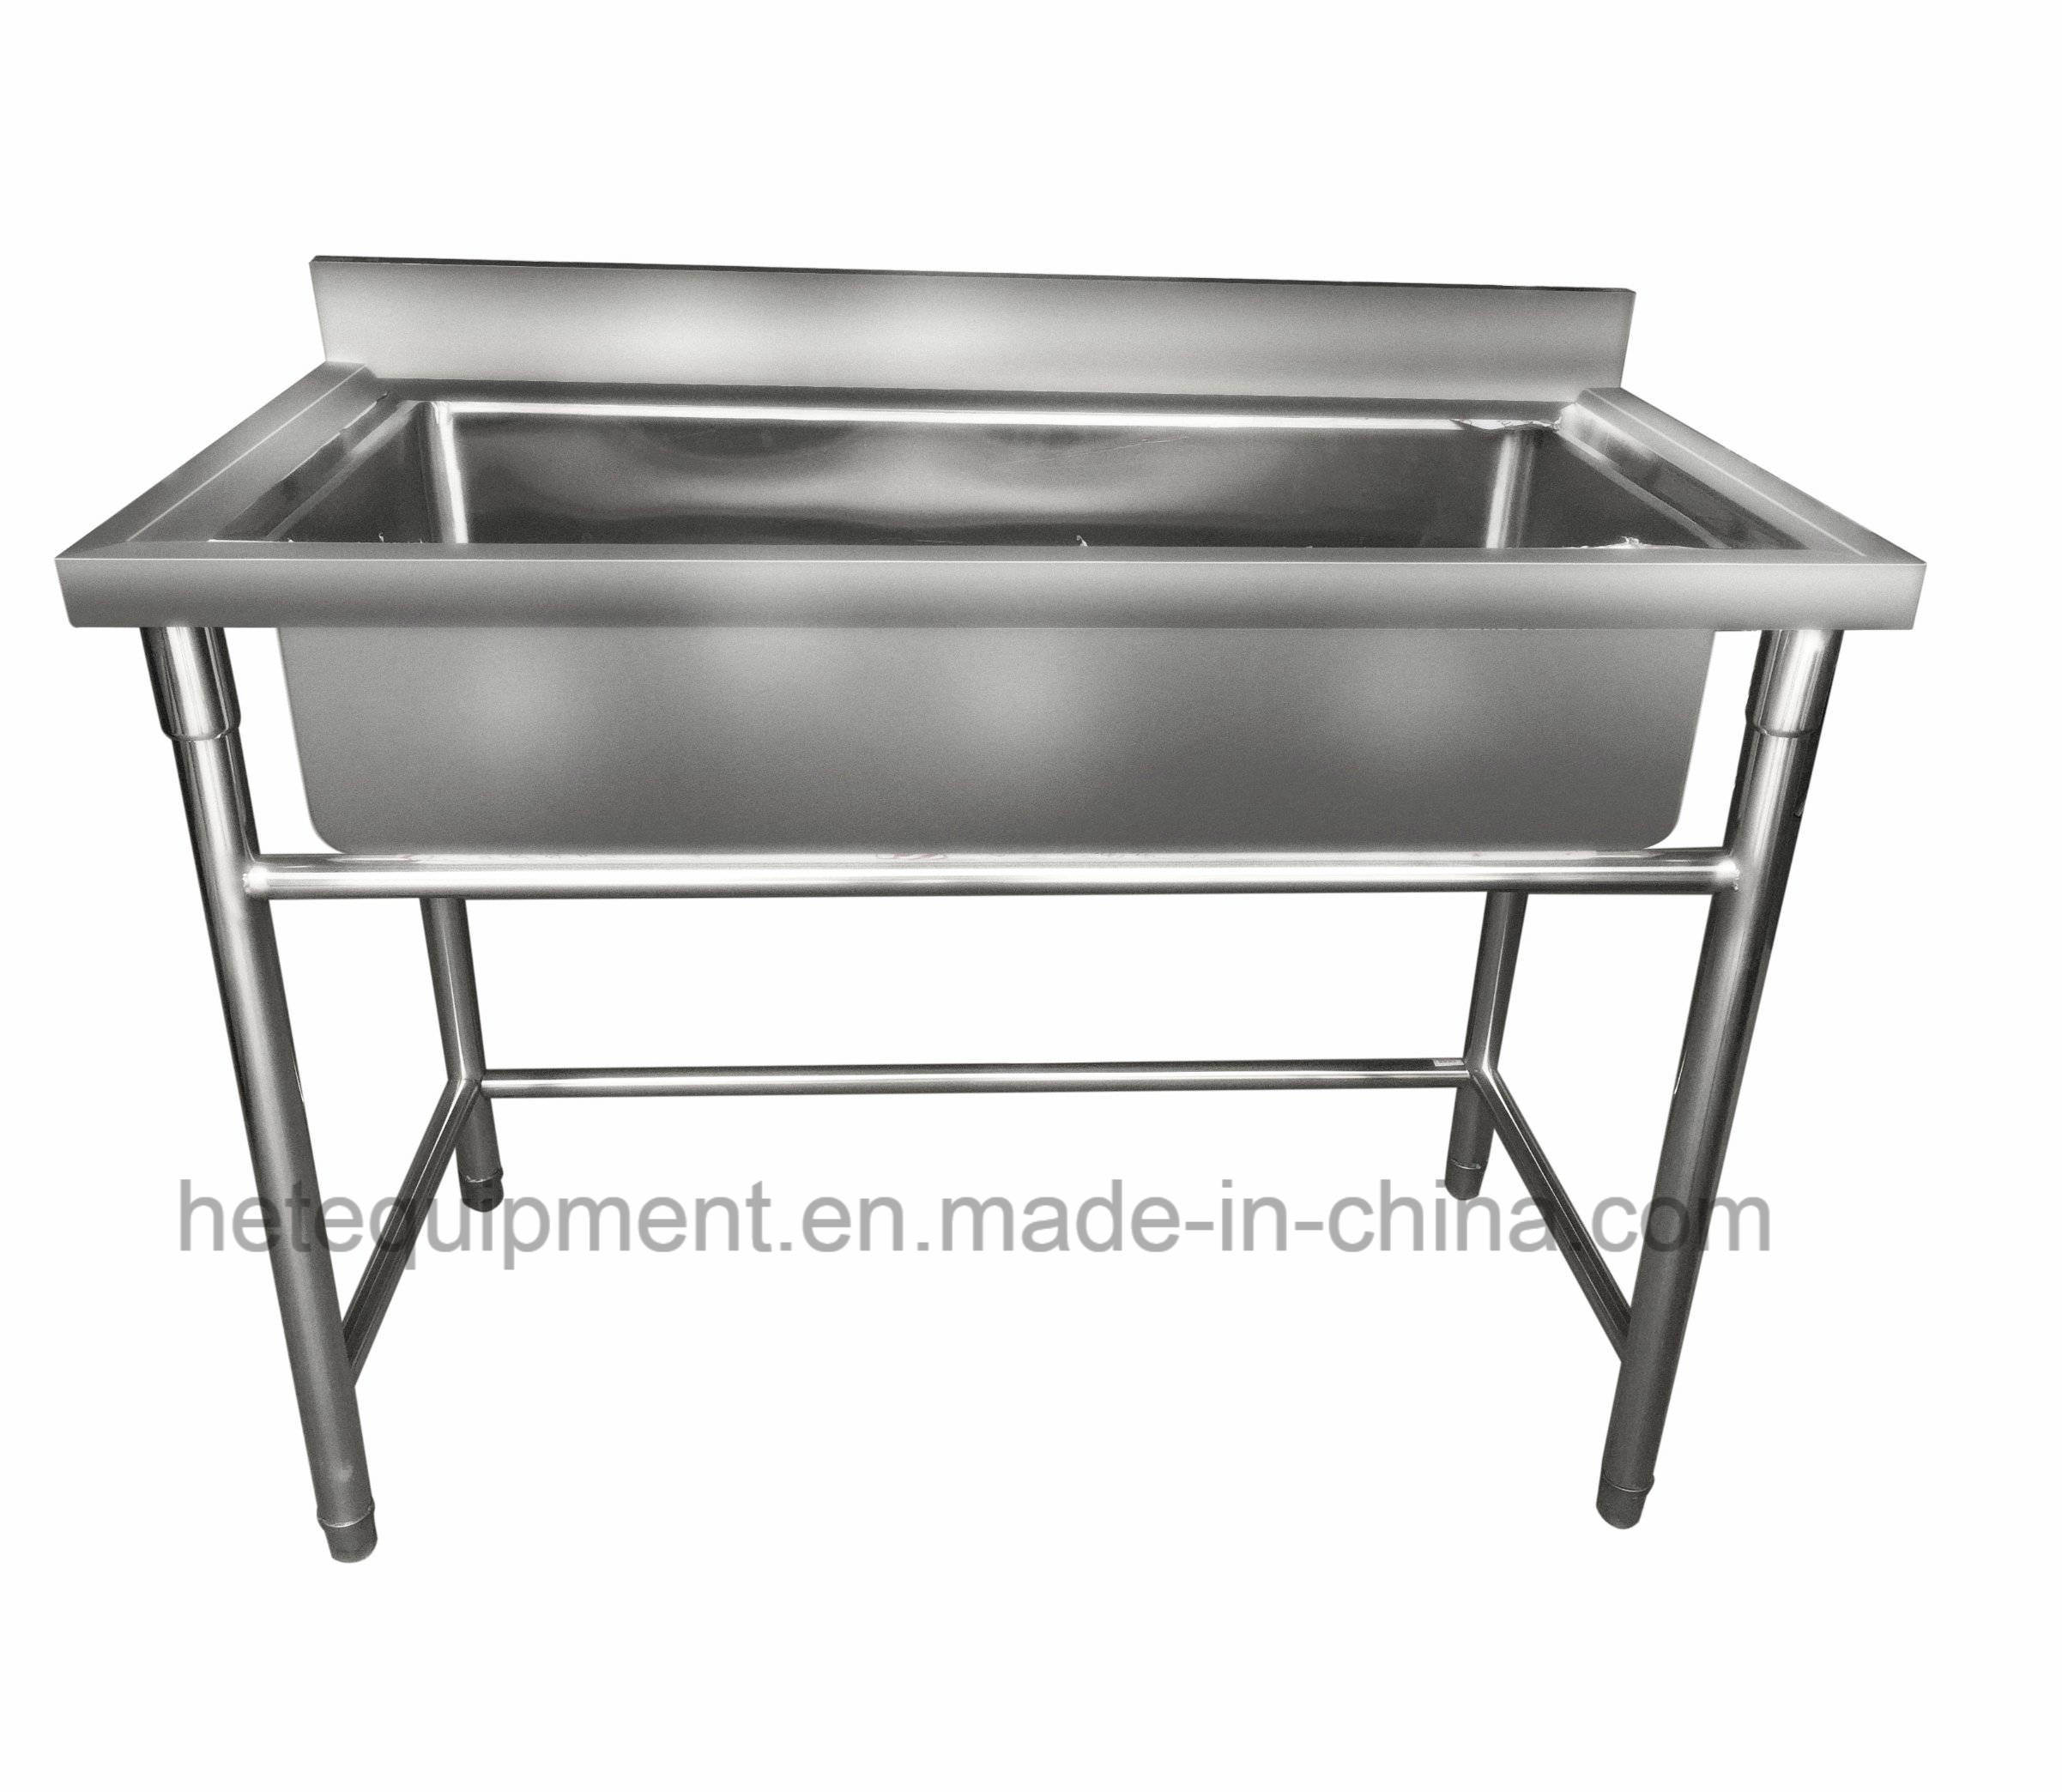 Industrial Kitchen Equipment Malaysia: China Good Selling Stainless Large Industrial Sink